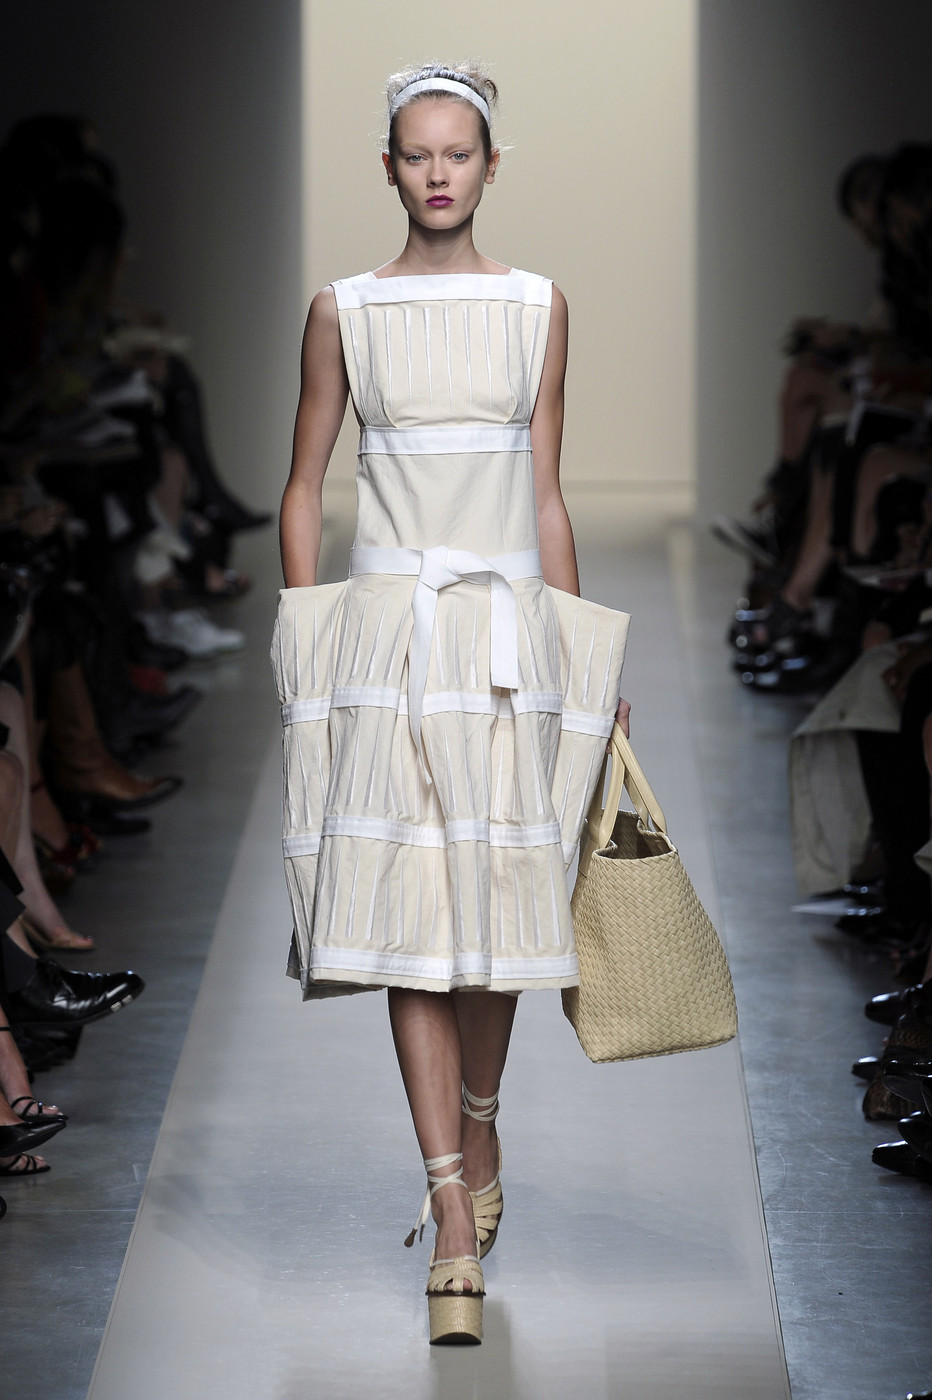 via fashioned by love | bottega veneta spring/summer 2010